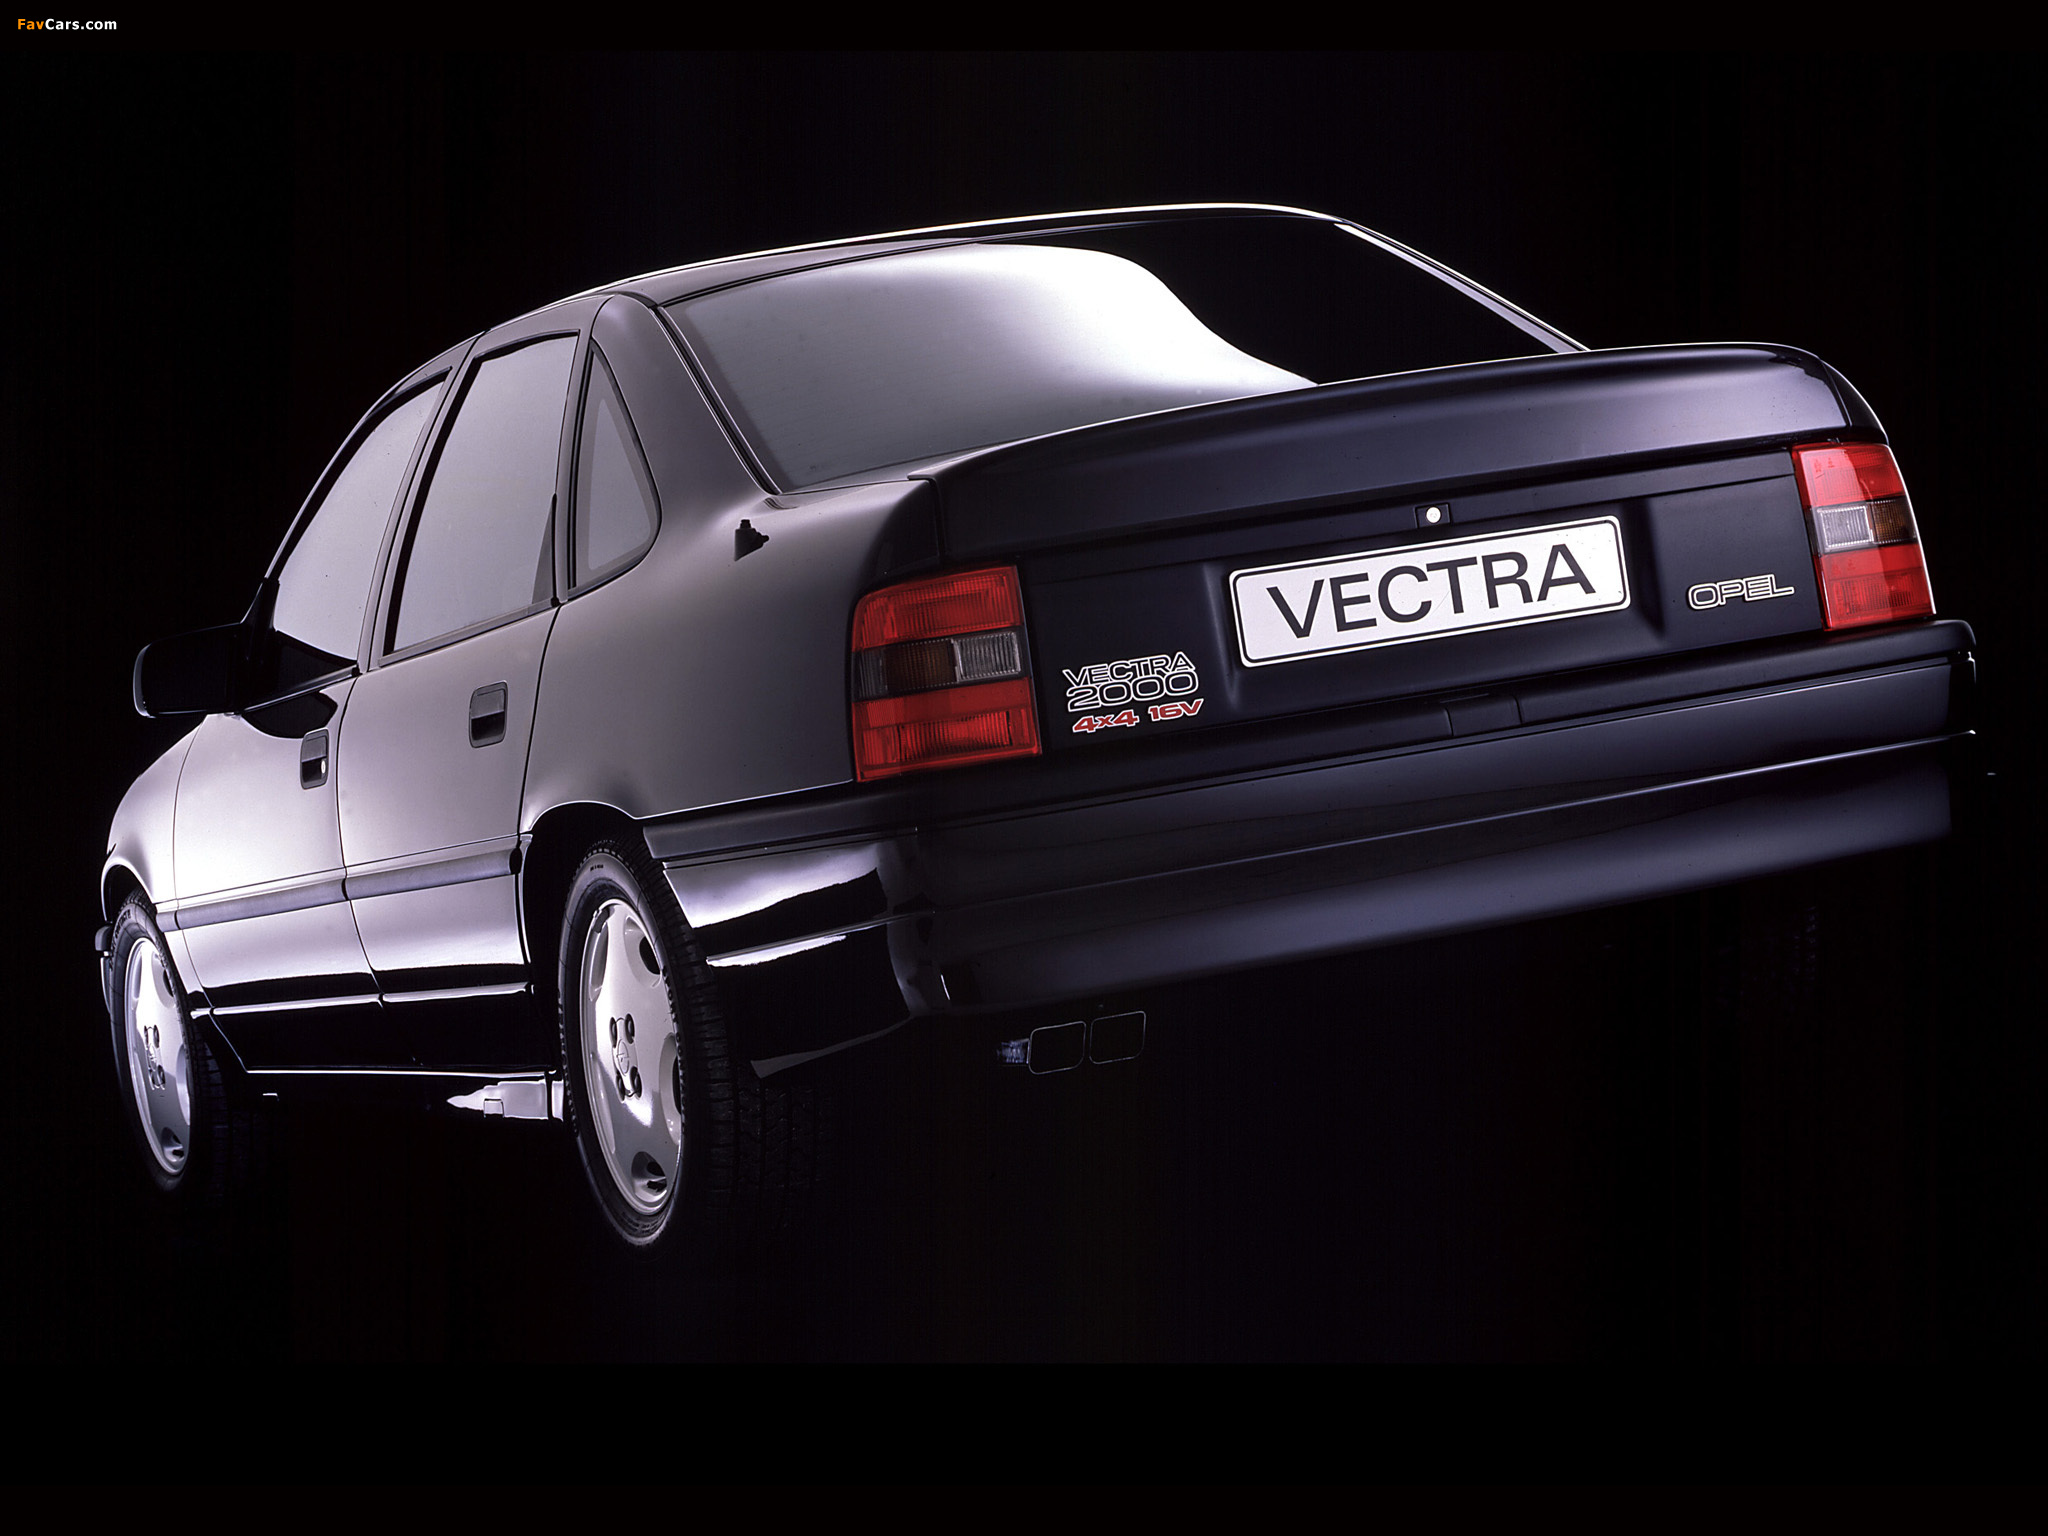 Images of Opel Vectra 2000 A 198992 2048x1536